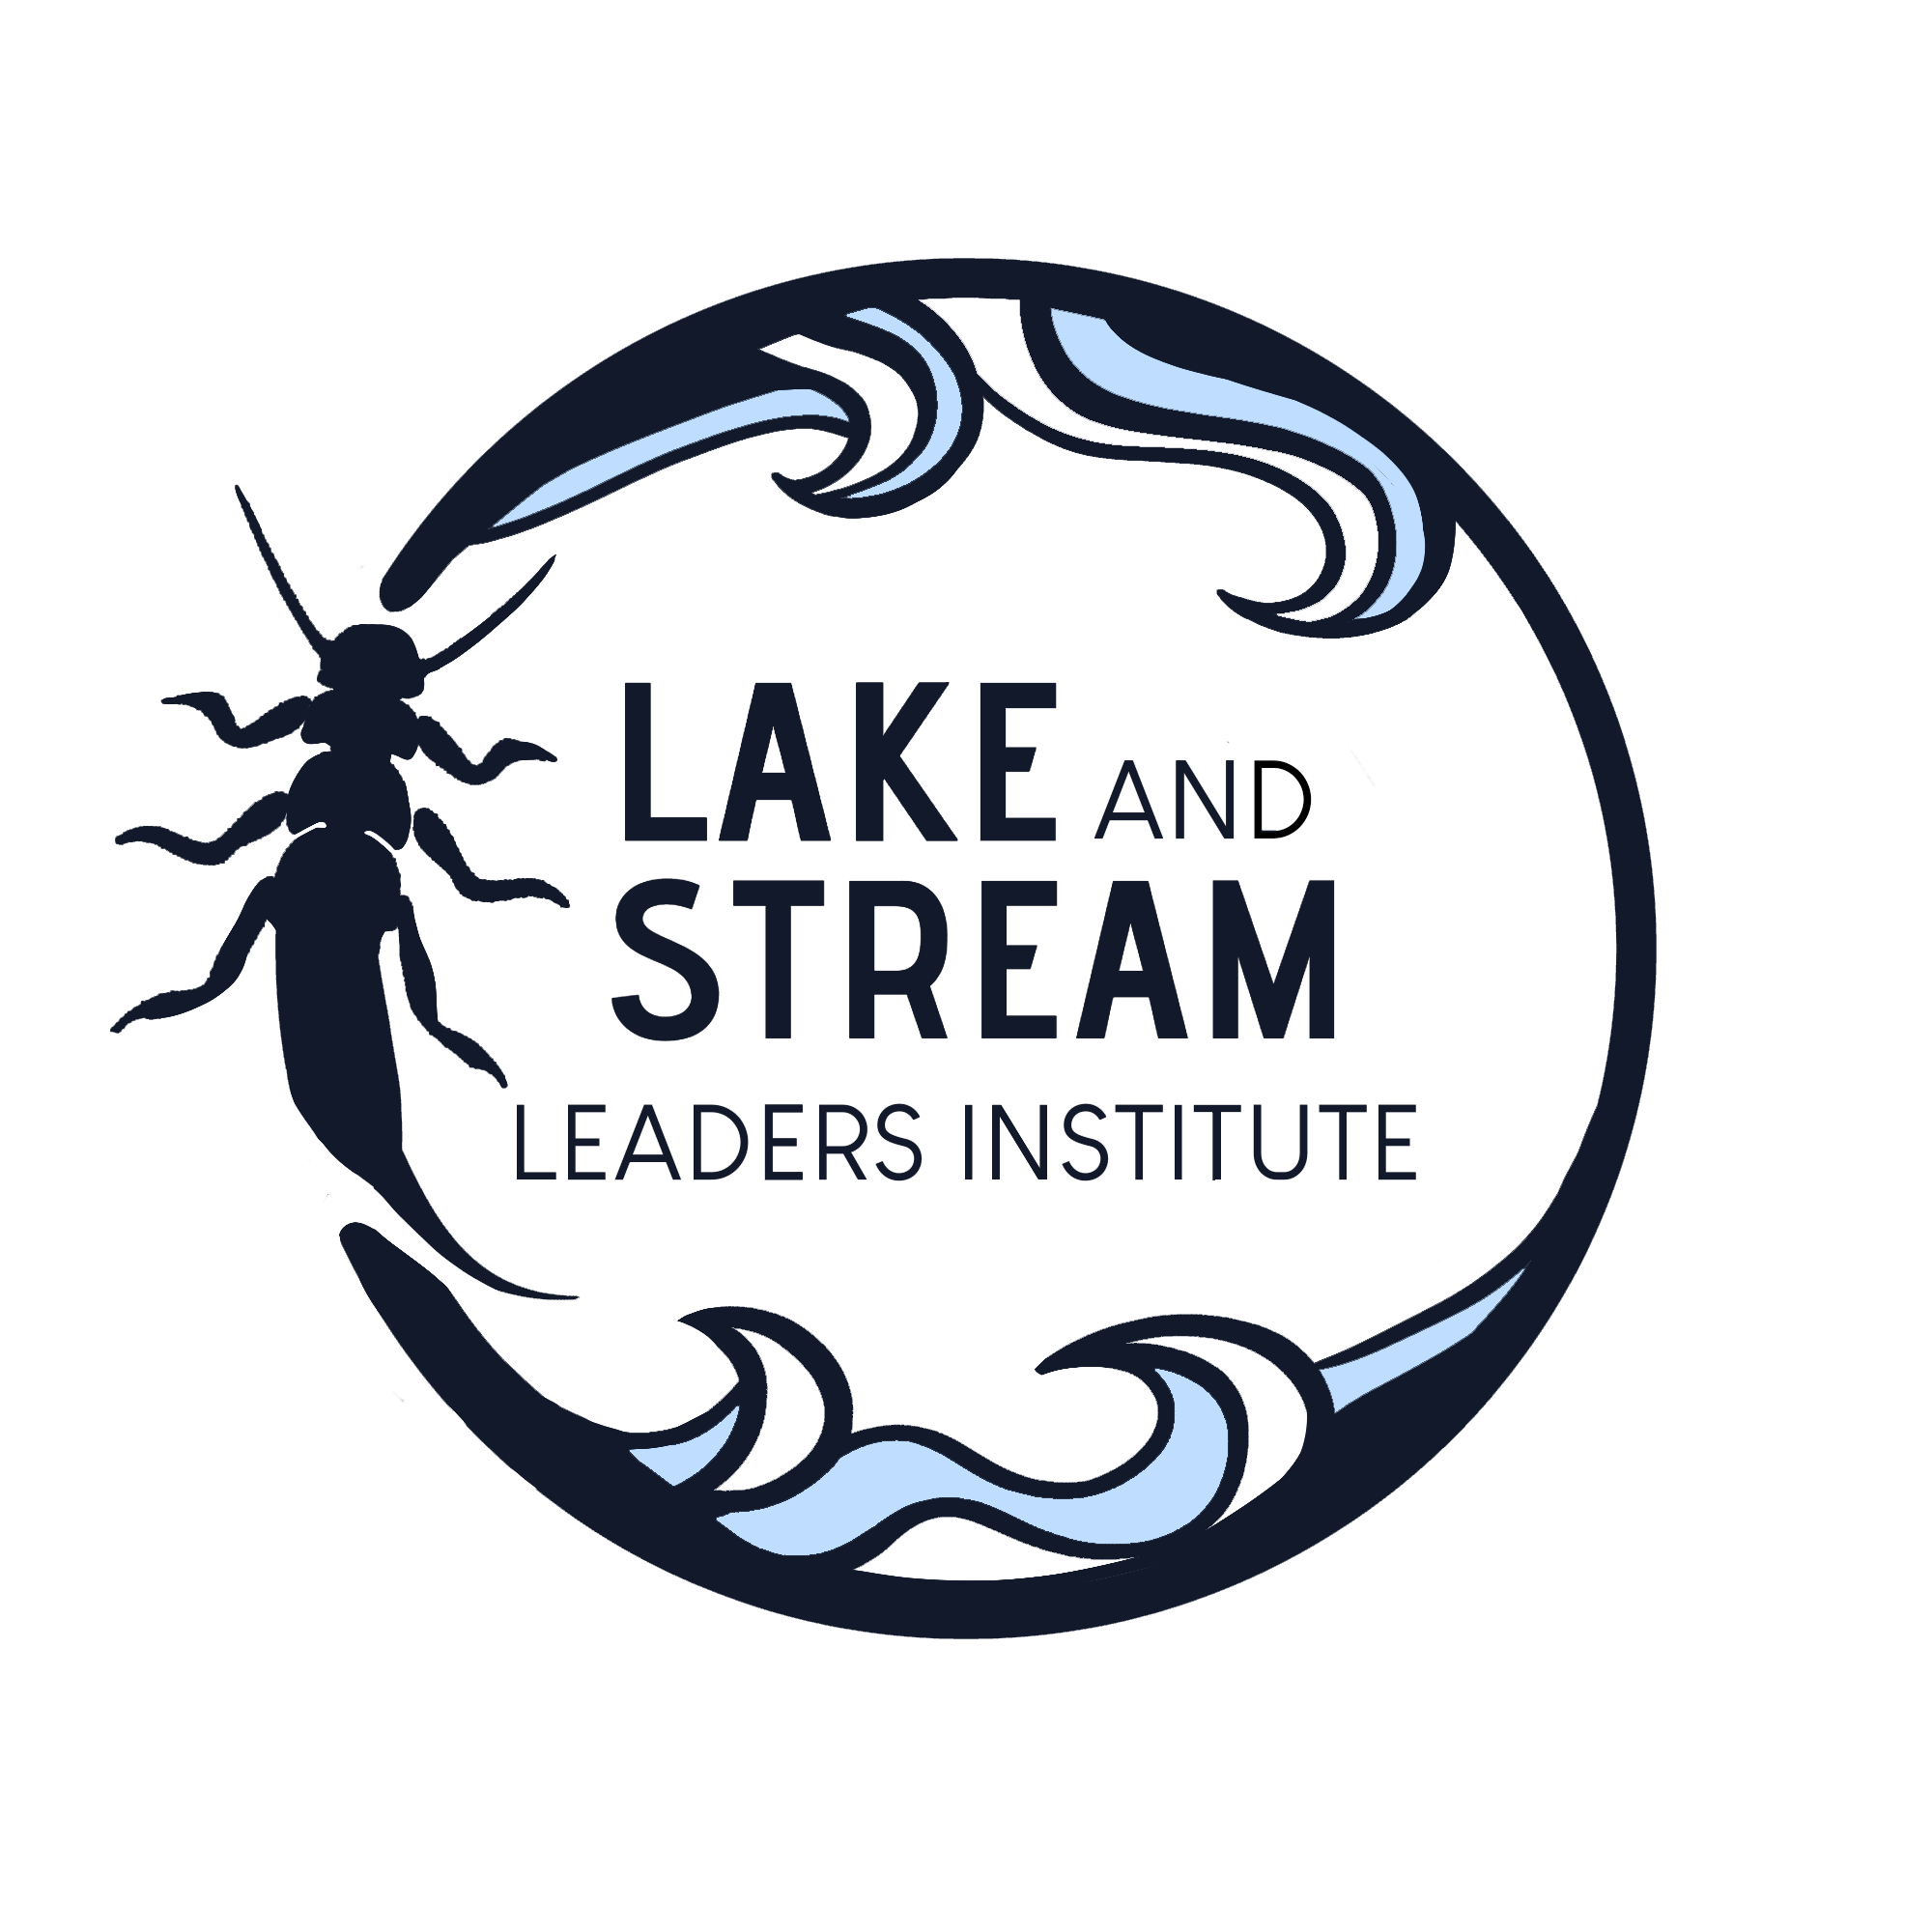 Lake and Stream Leaders Institute logo